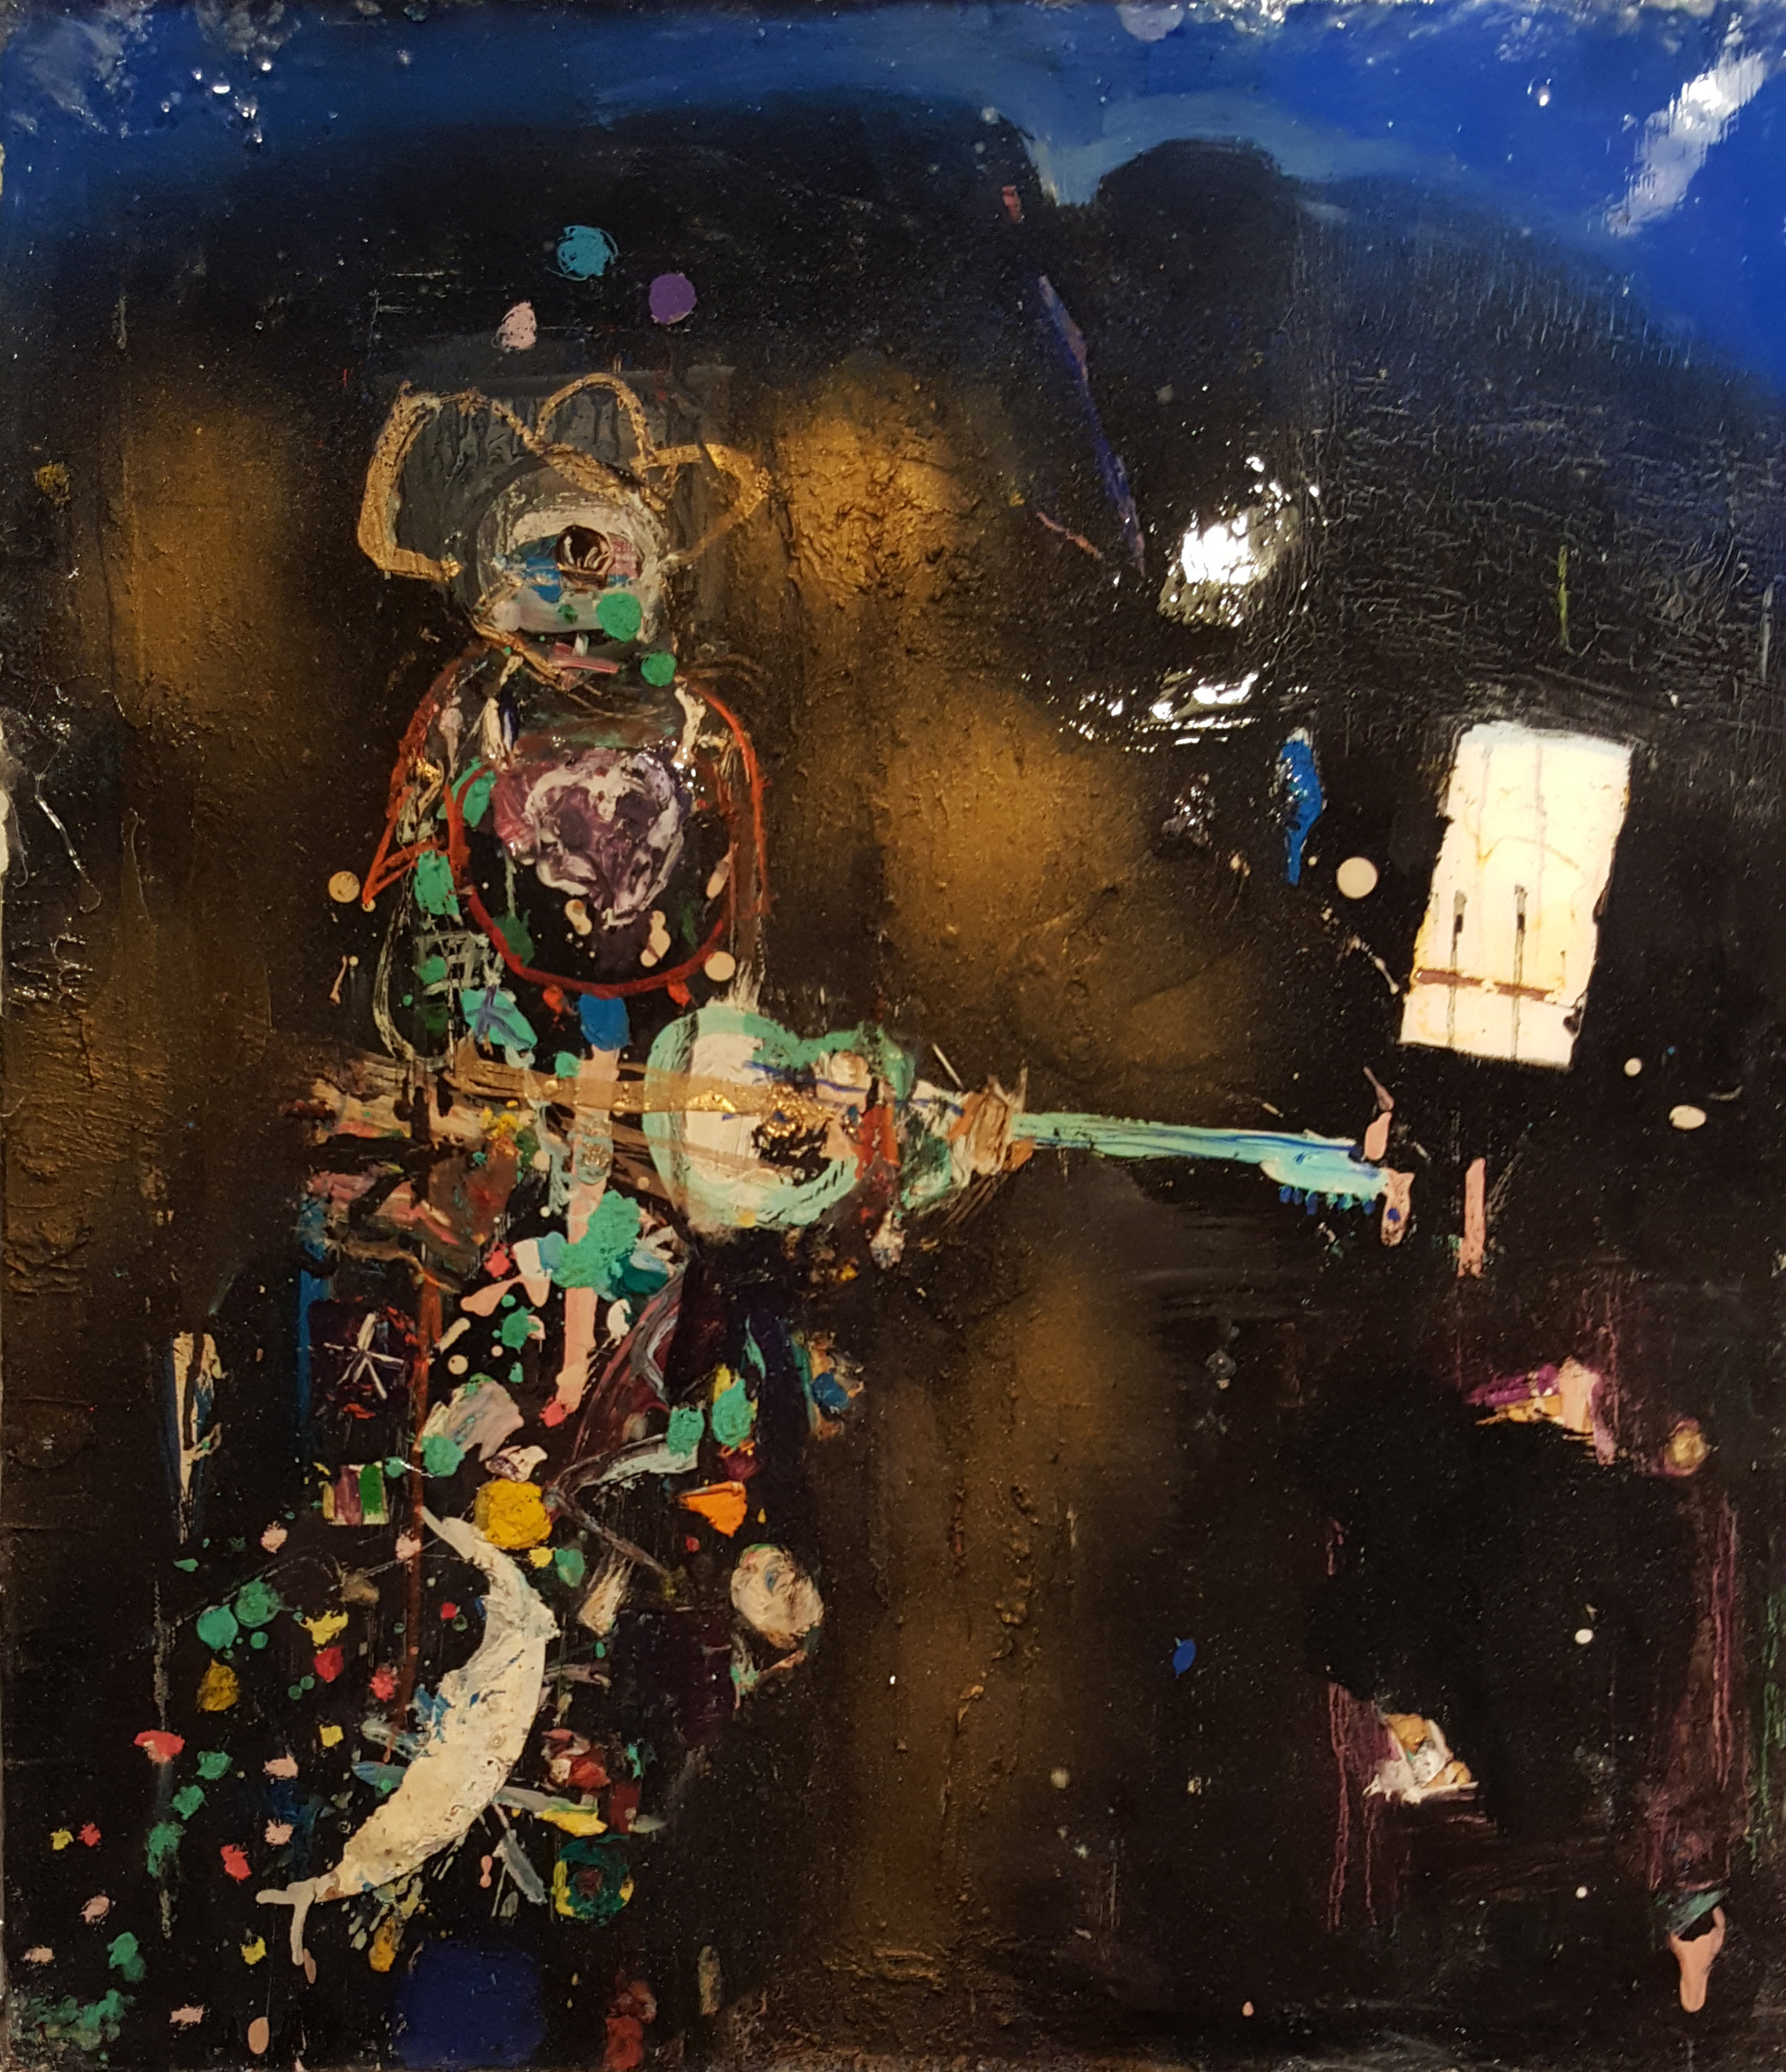 Matt Blackwell,  High and Lonesome,  2015, Mixed media on panel, resin, 18h x 16w in.